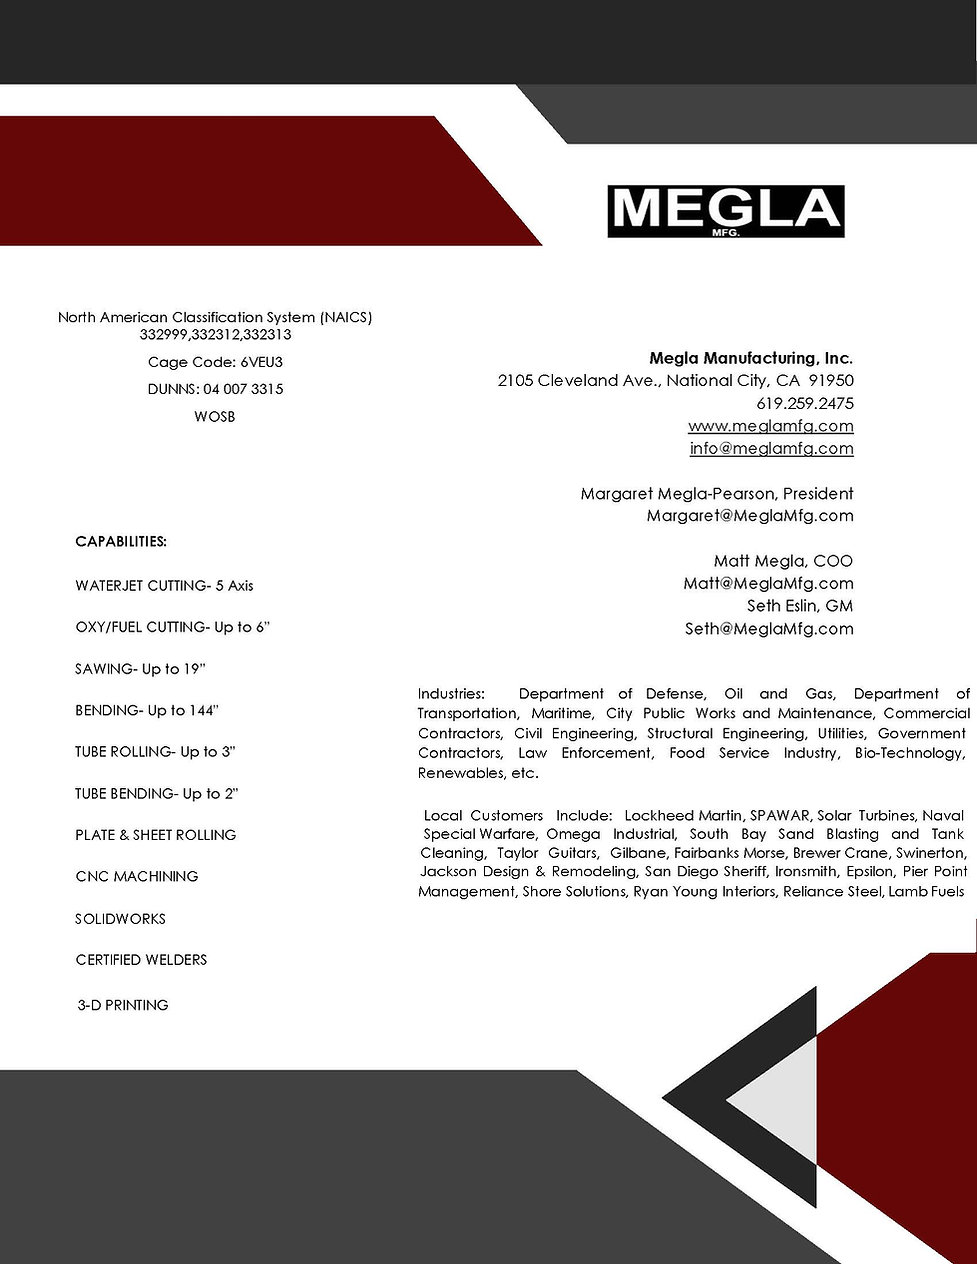 Megla MFG business flyer #3.jpg